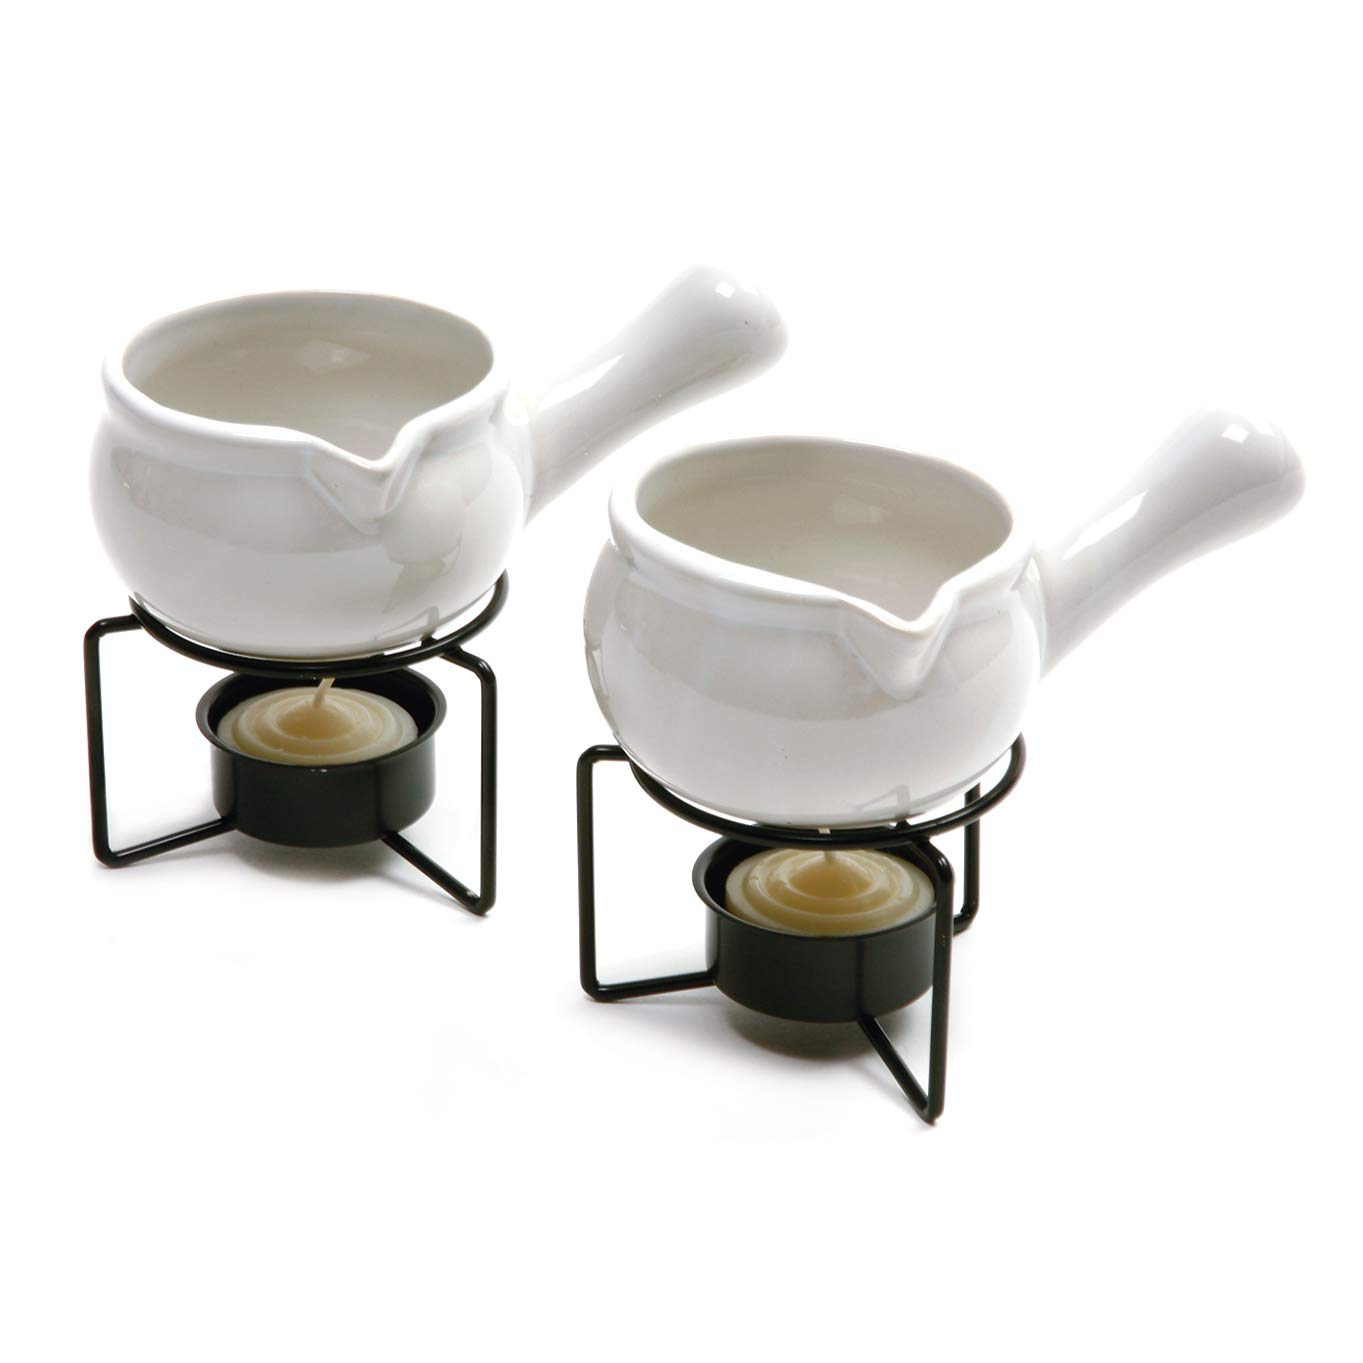 Norpro 210 Ceramic Butter Warmers, Set of 2, 1/3 cup/3 oz, White by Norpro